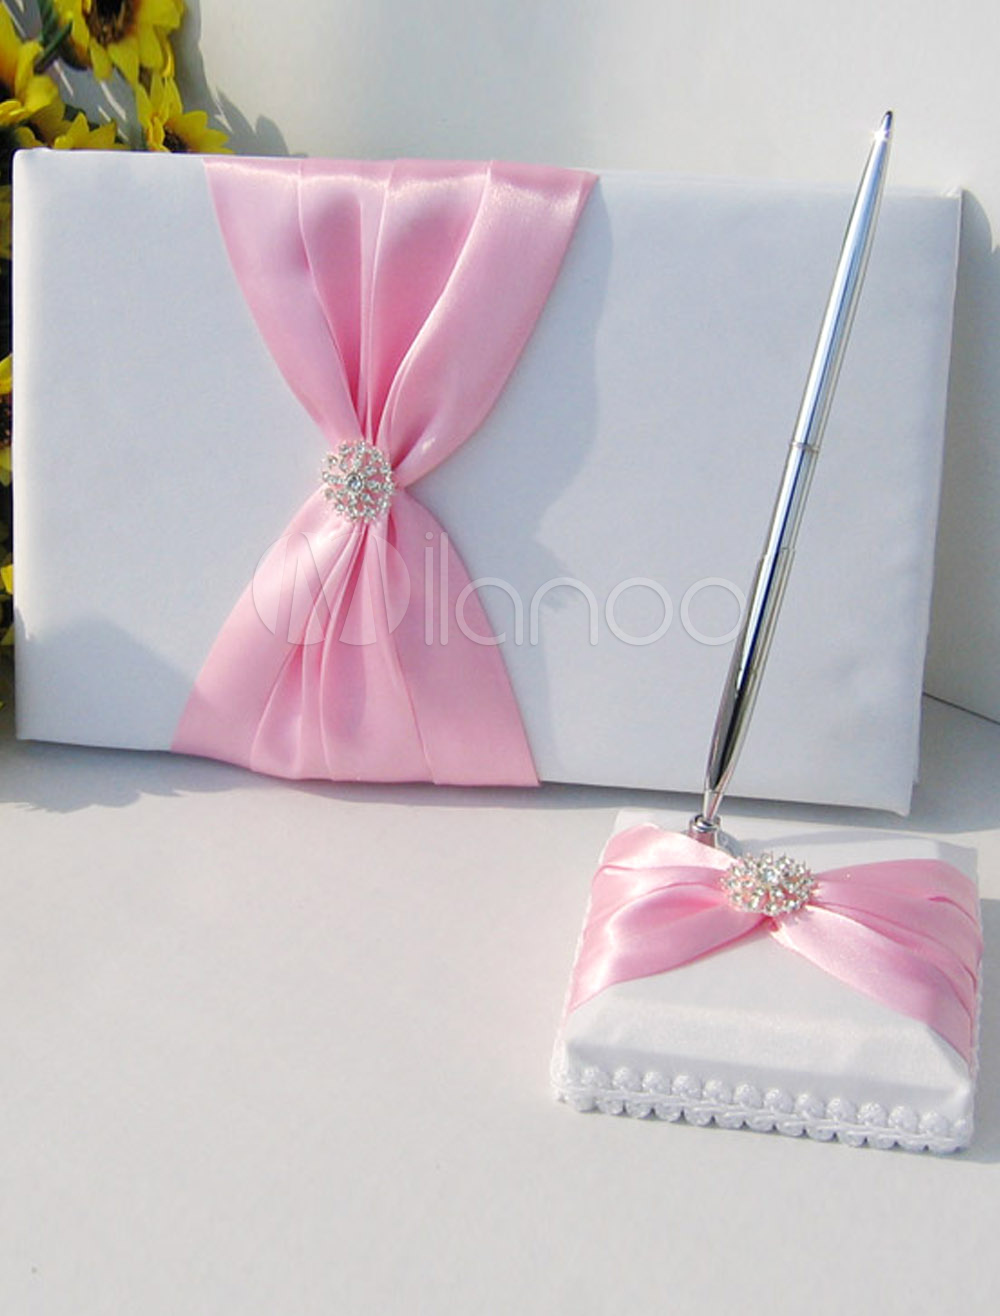 White Rhinestone Red Bow Wedding Guest Book and Pens - Milanoo.com